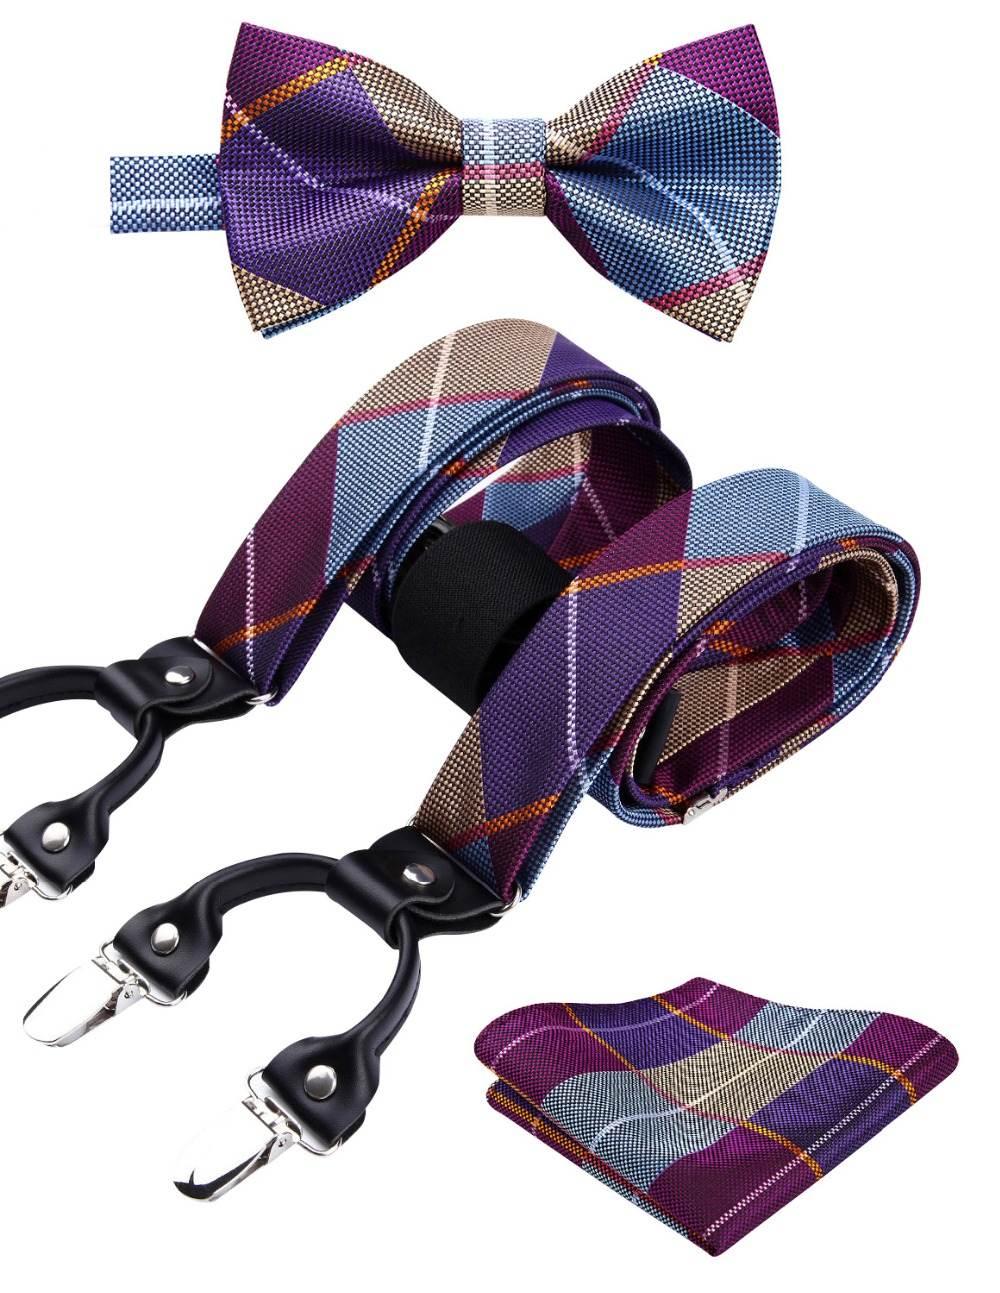 Check&plaid Various Classic Braces 6 Clips Suspenders  Self Bowtie And Pocket Square Set #S2